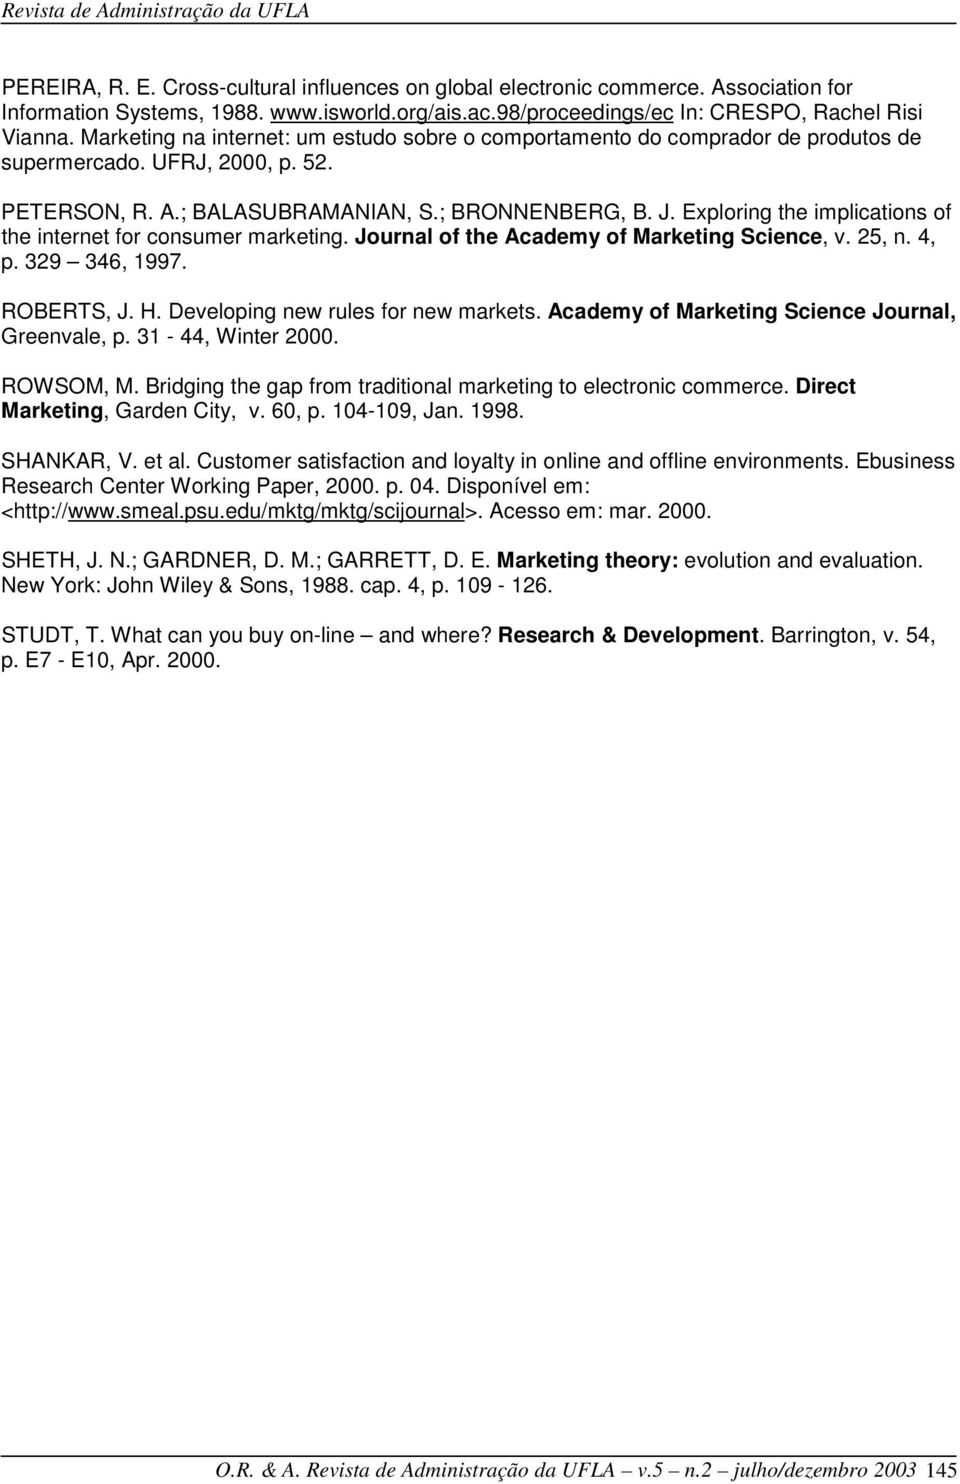 ; BALASUBRAMANIAN, S.; BRONNENBERG, B. J. Exploring the implications of the internet for consumer marketing. Journal of the Academy of Marketing Science, v. 25, n. 4, p. 329 346, 1997. ROBERTS, J. H.